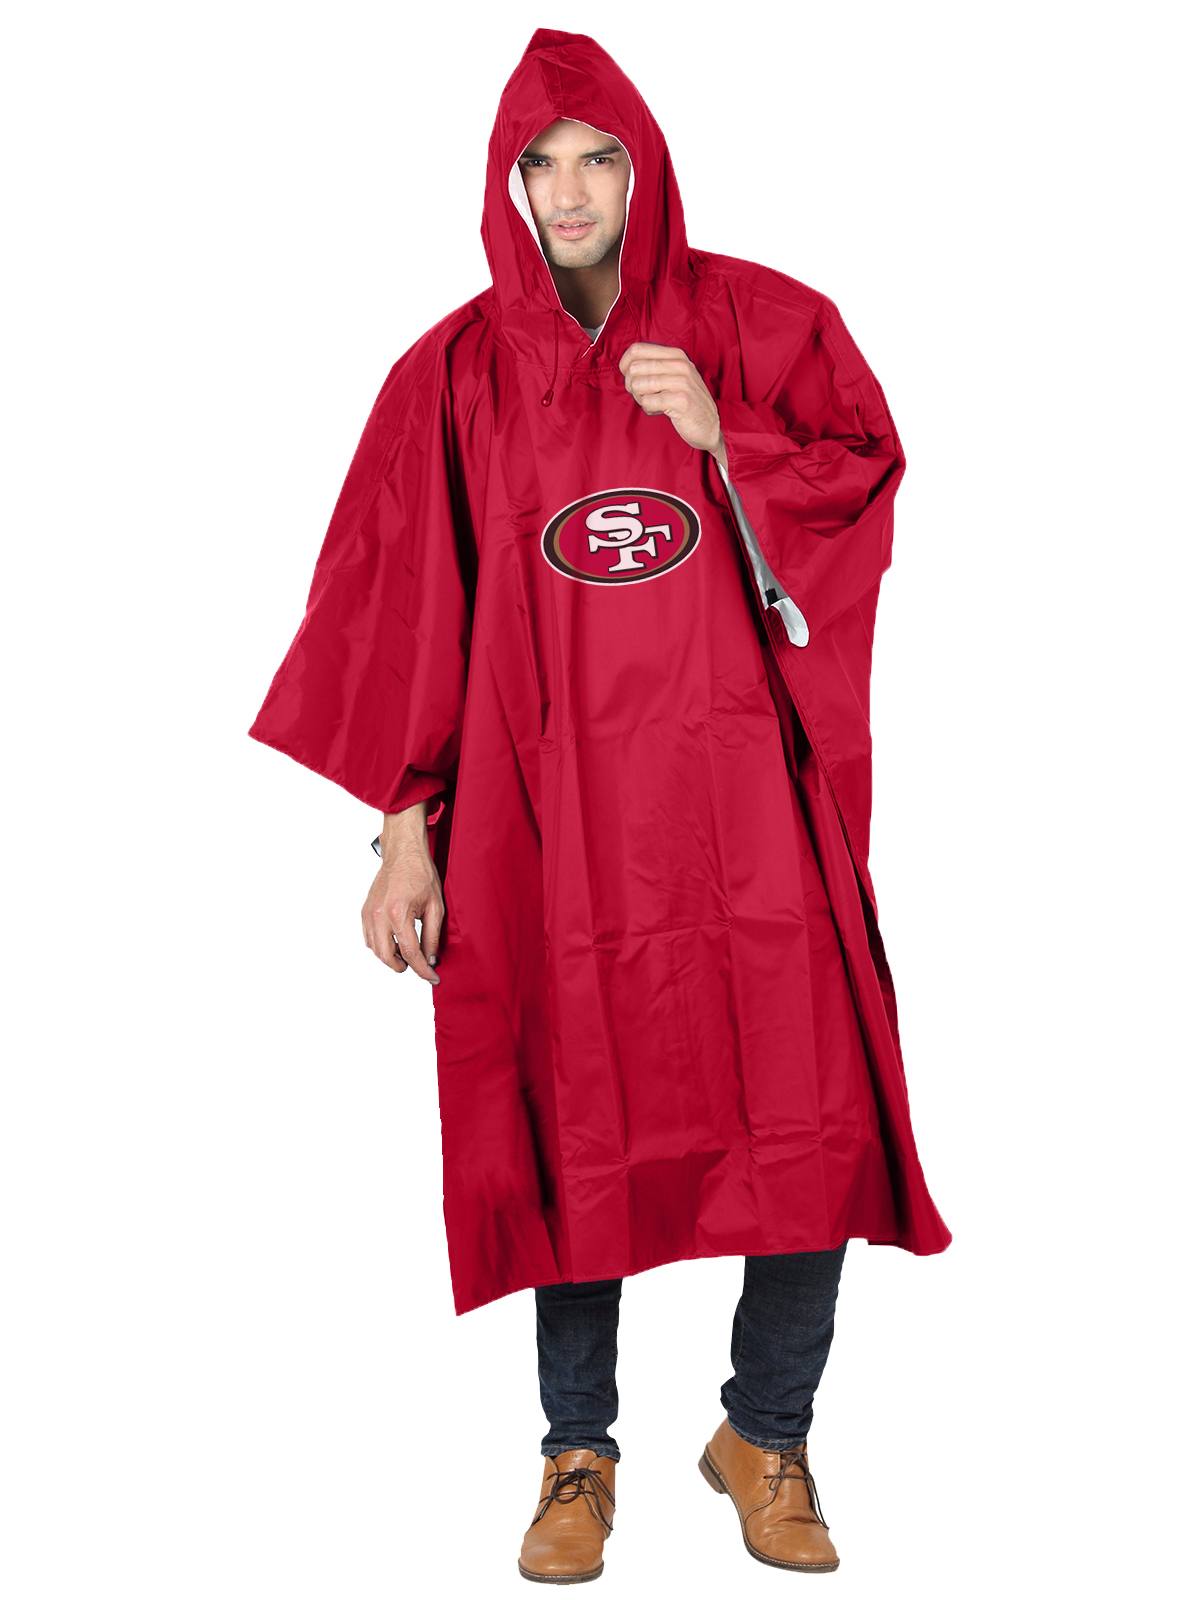 NFL San Francisco 49ers �Deluxe� 44�H x 49�W (Adult Size) Poncho by The Northwest Company